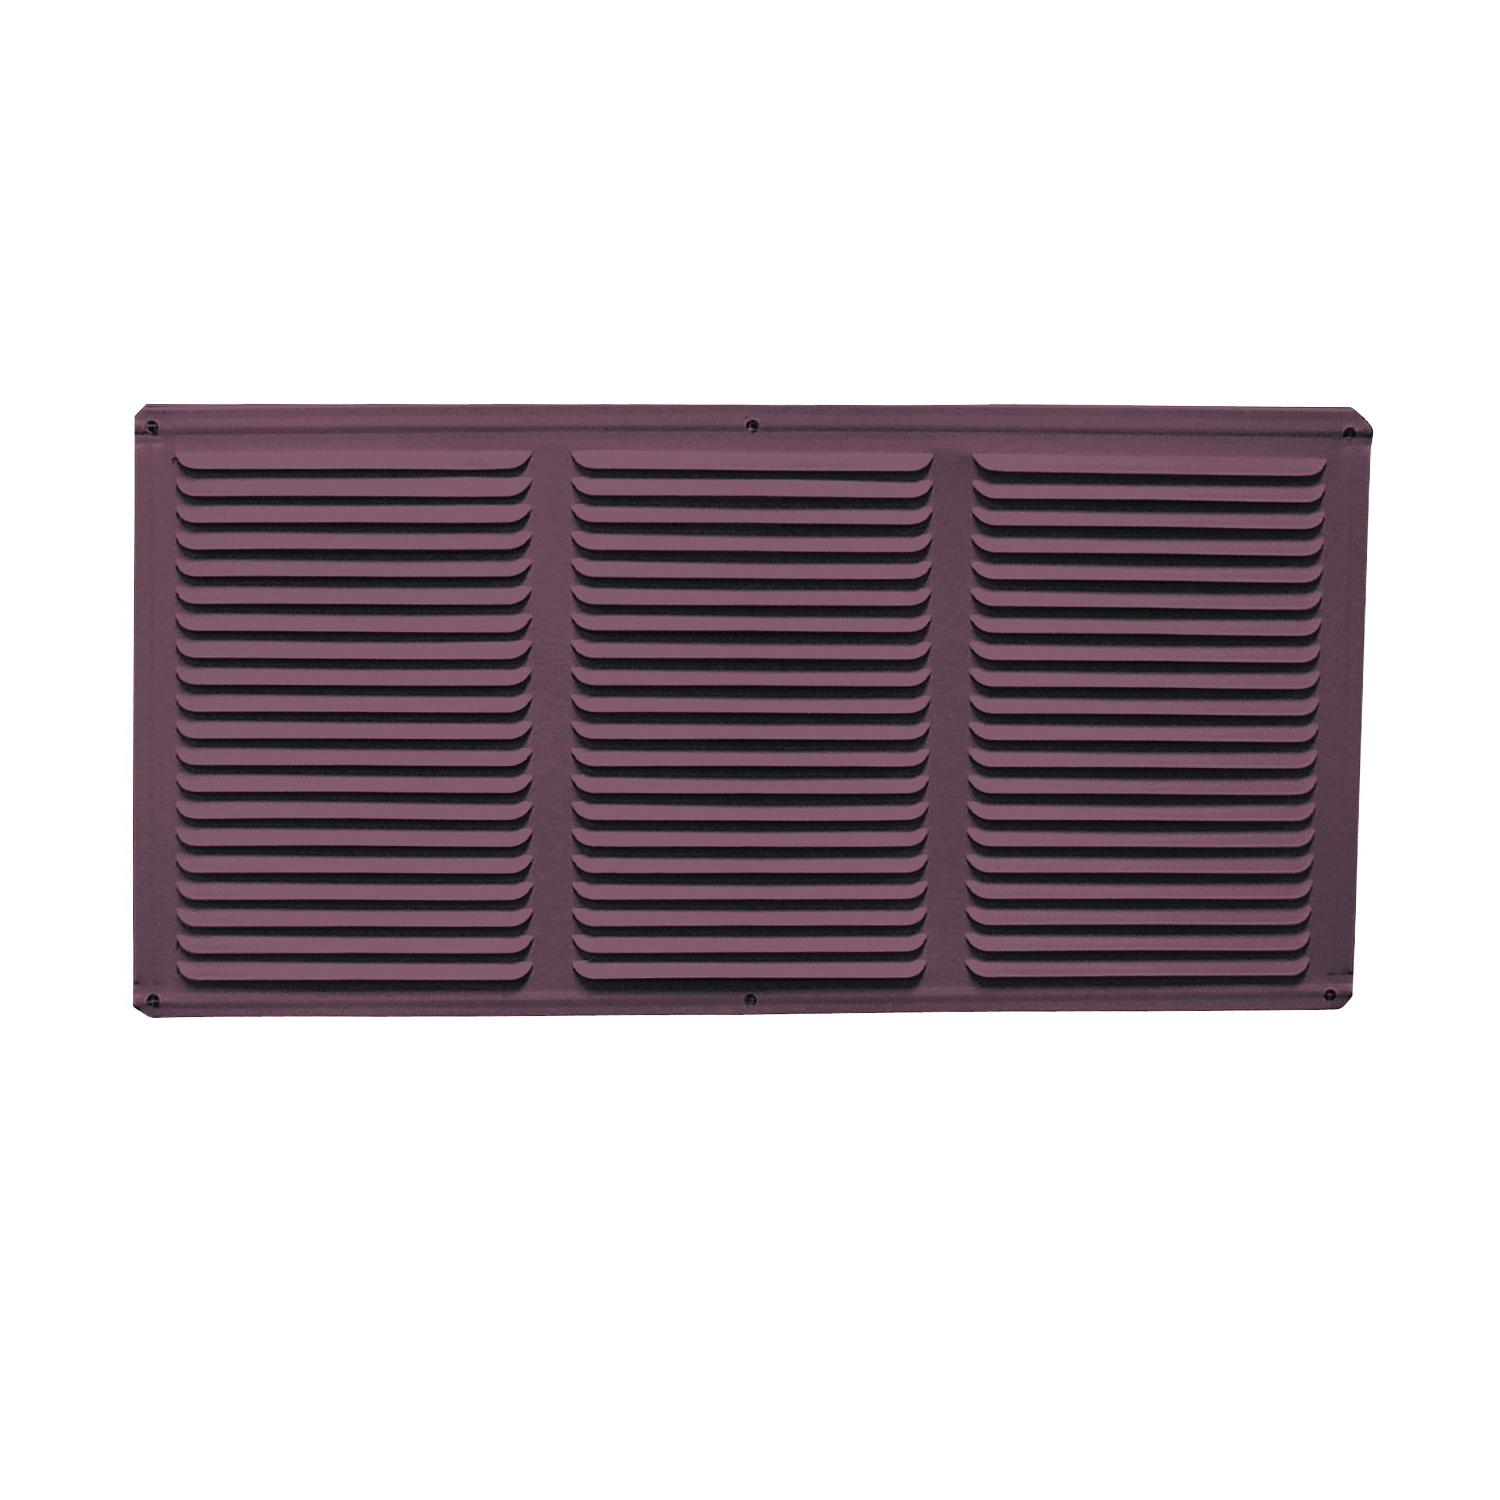 Picture of Master Flow EAC16X4BR Undereave Vent, 24 sq-ft Net Free Ventilating Area, Aluminum, Brown